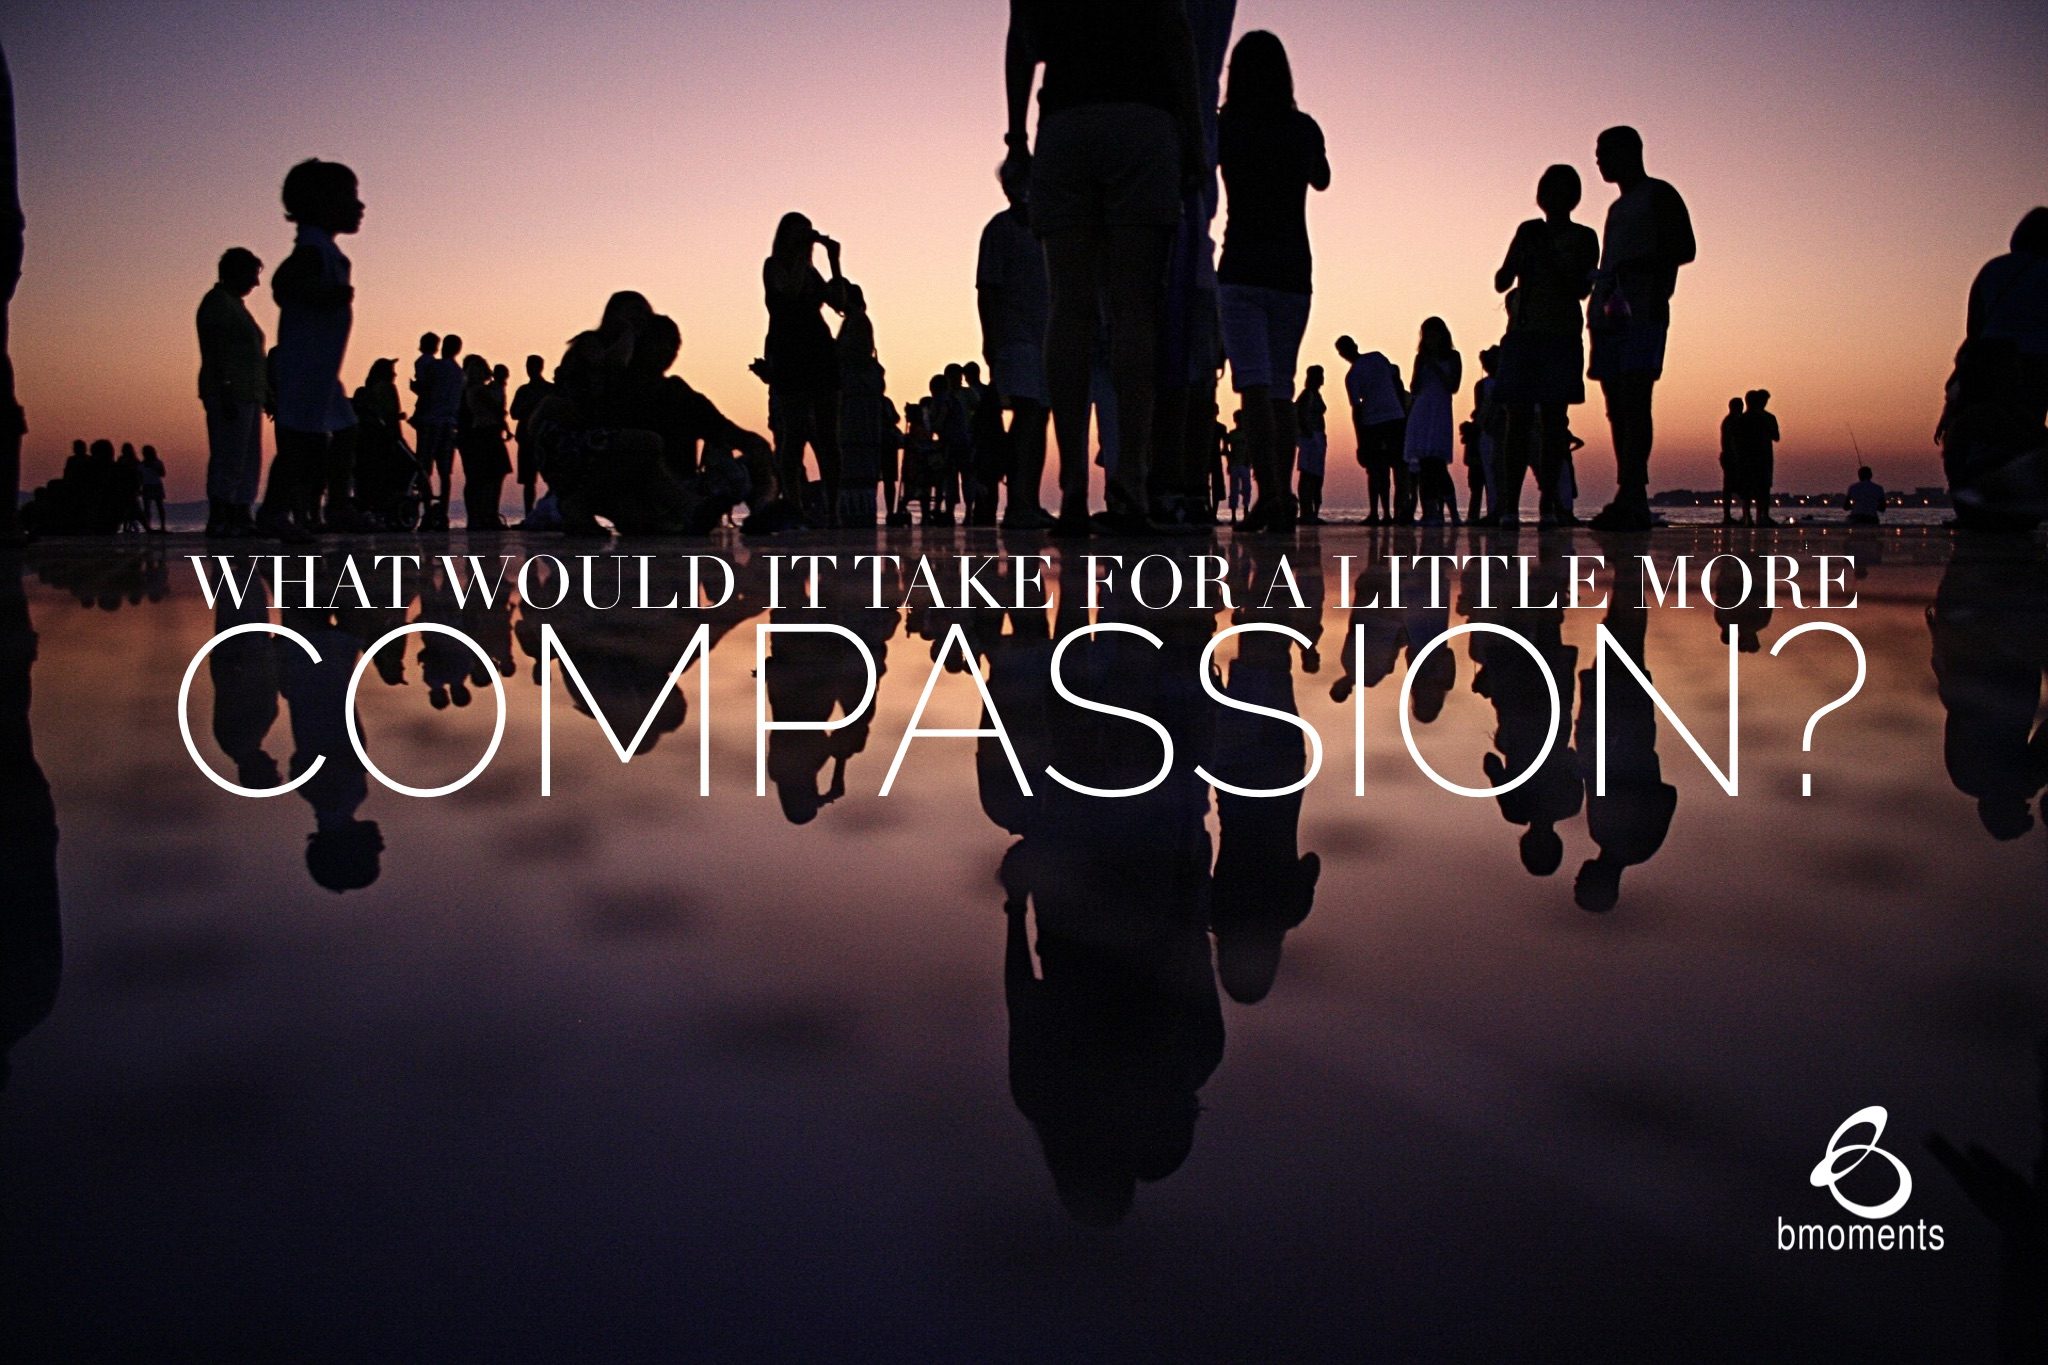 The Need for More Compassion